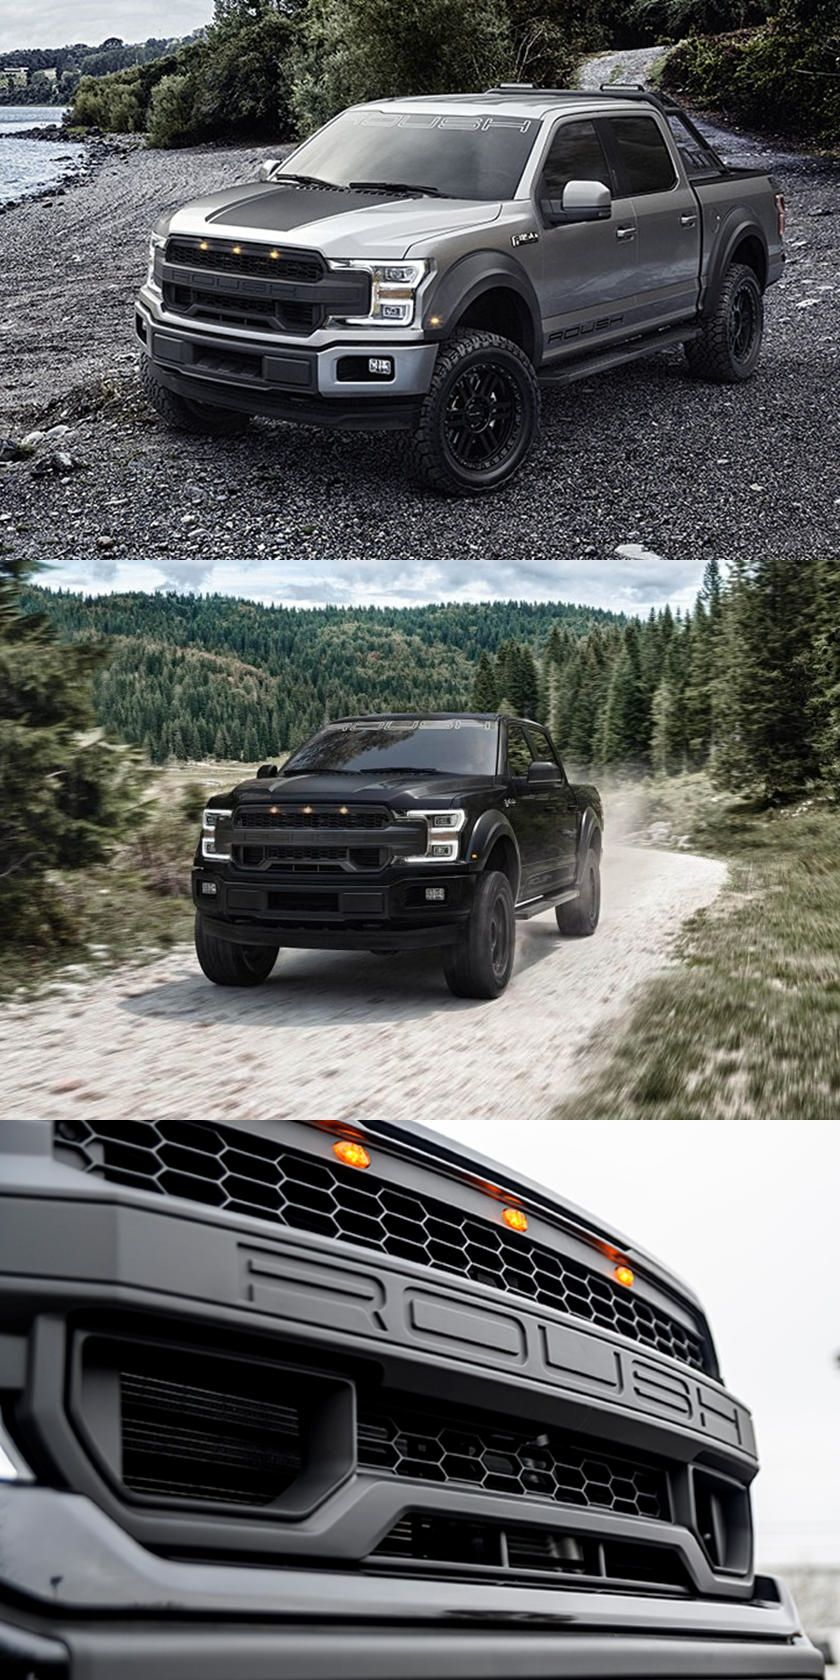 2020 Roush F150 Brings OffRoad Flavor. The 2020 Roush